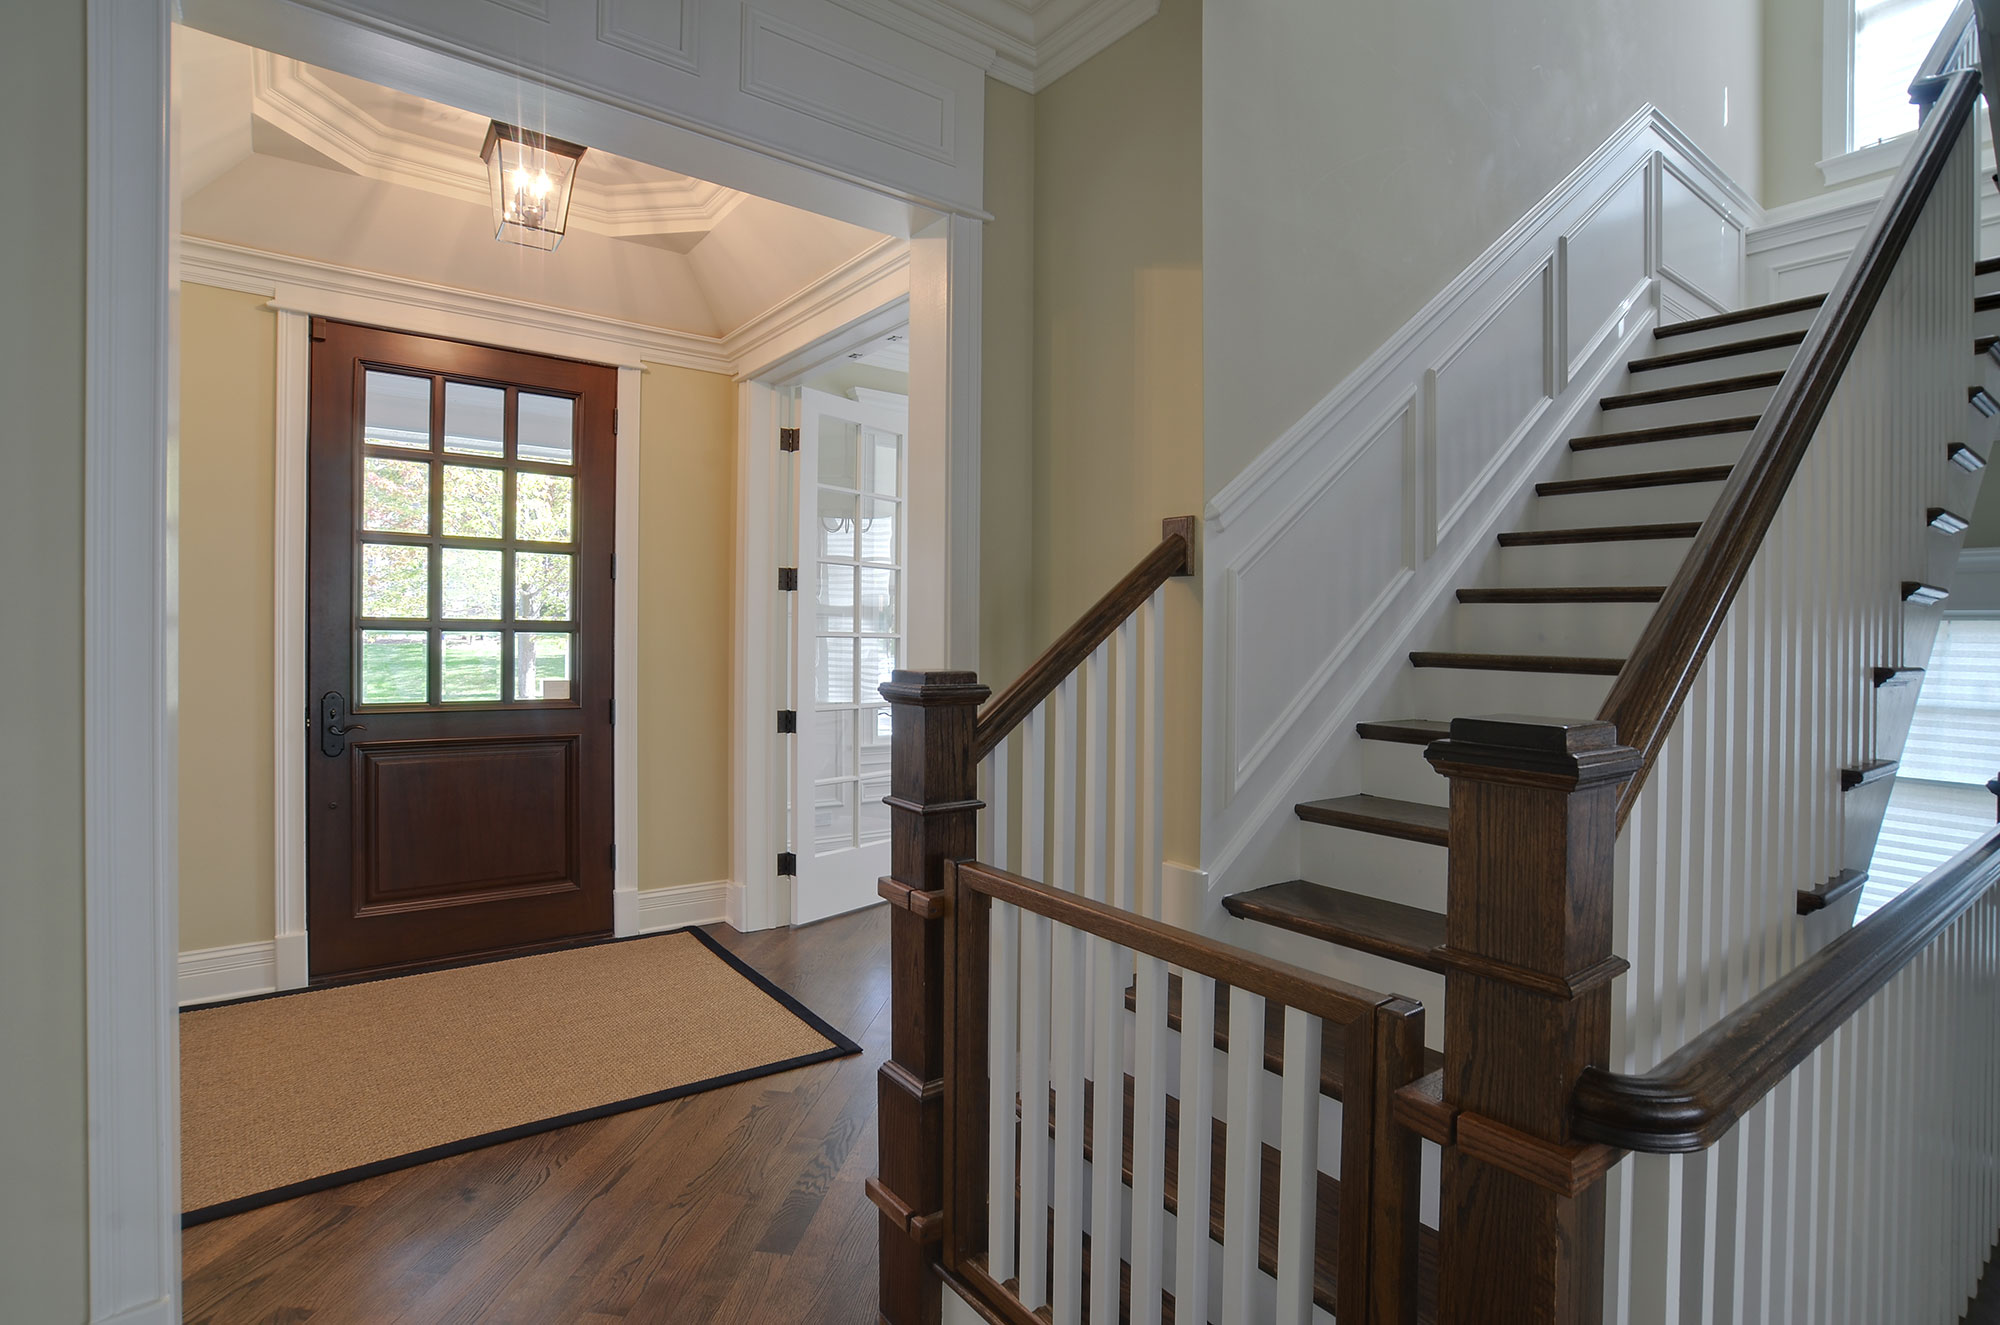 Stairway Door Stair | New Custom Homes | Globex Developments, Inc